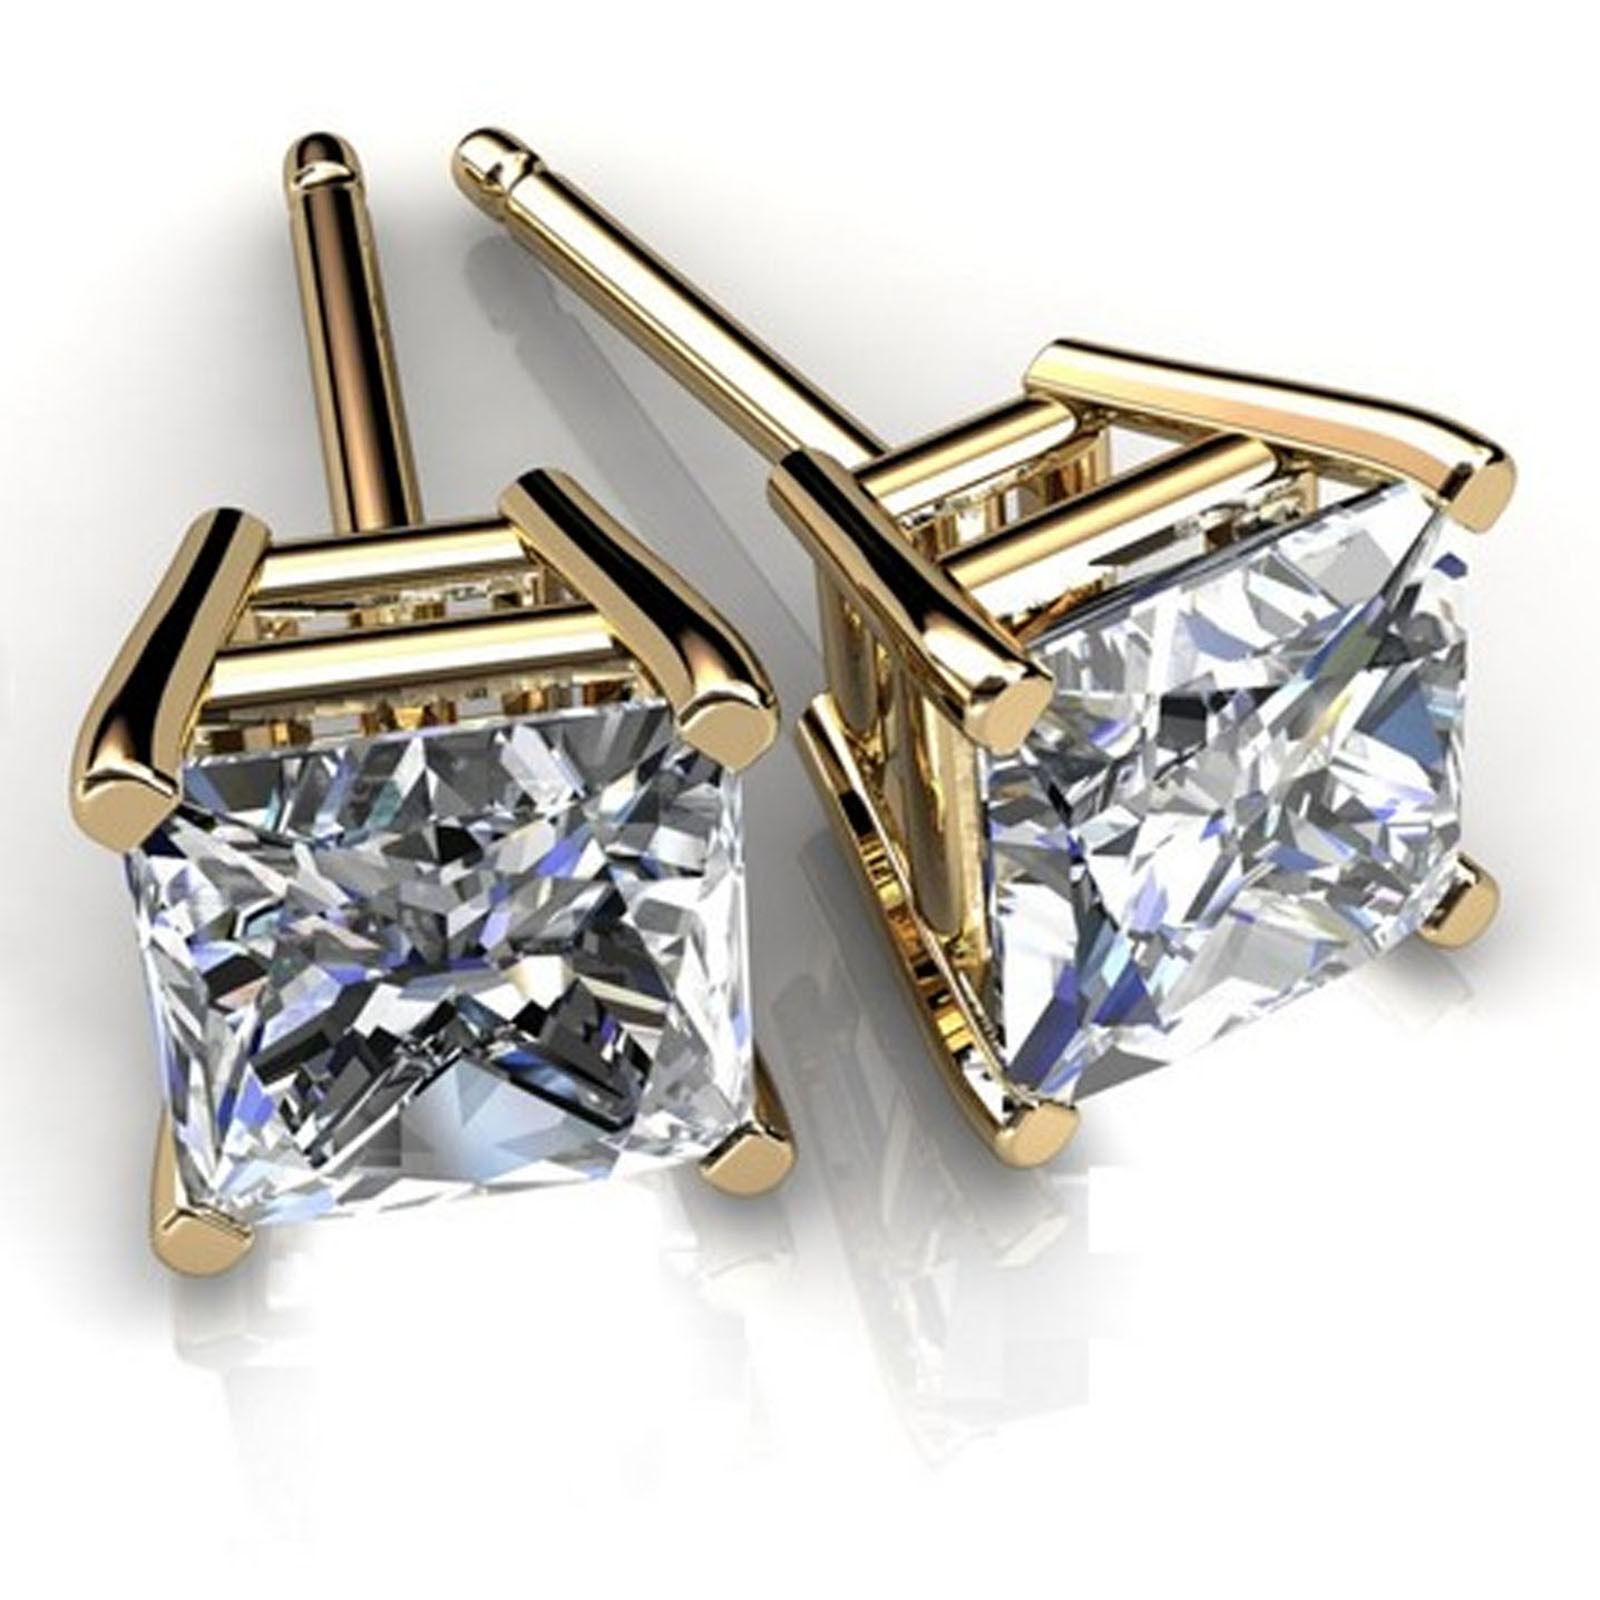 2.00ct Diamond Earrings 14K Yellow gold Stud  Women Jewelry VVS1 D Studs